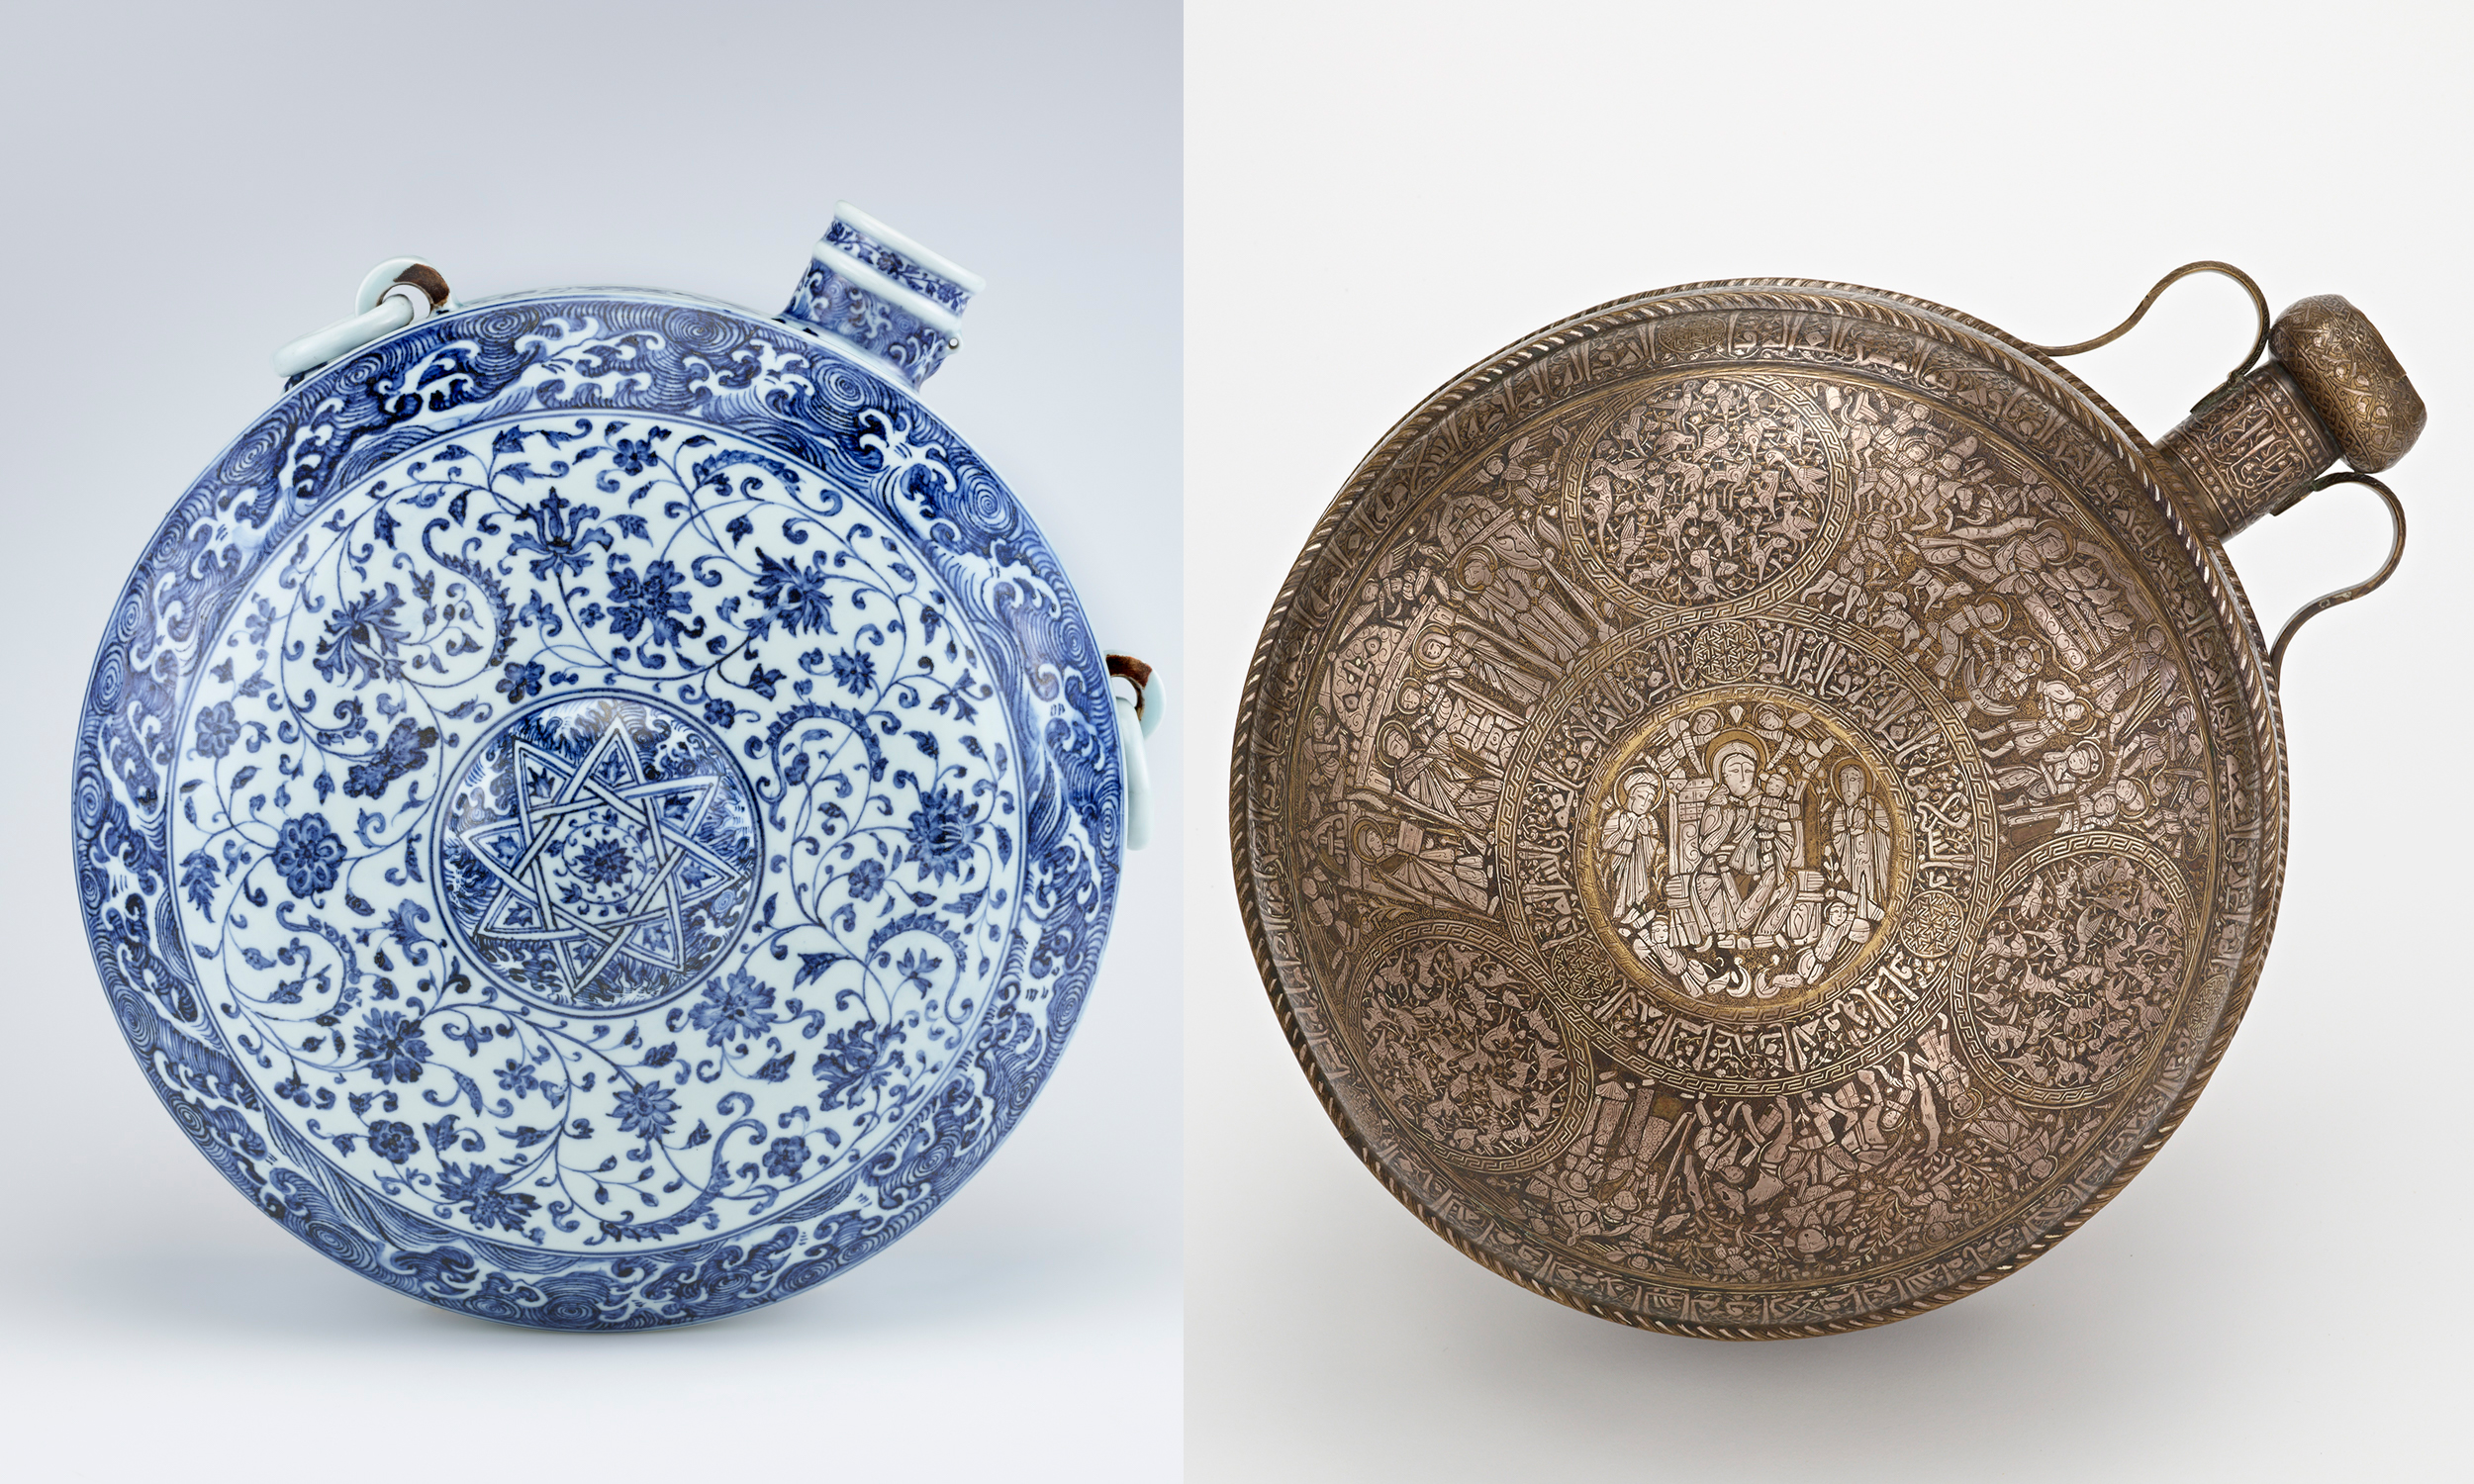 collage of a blue and white ceramic canteen next to a metal canteen